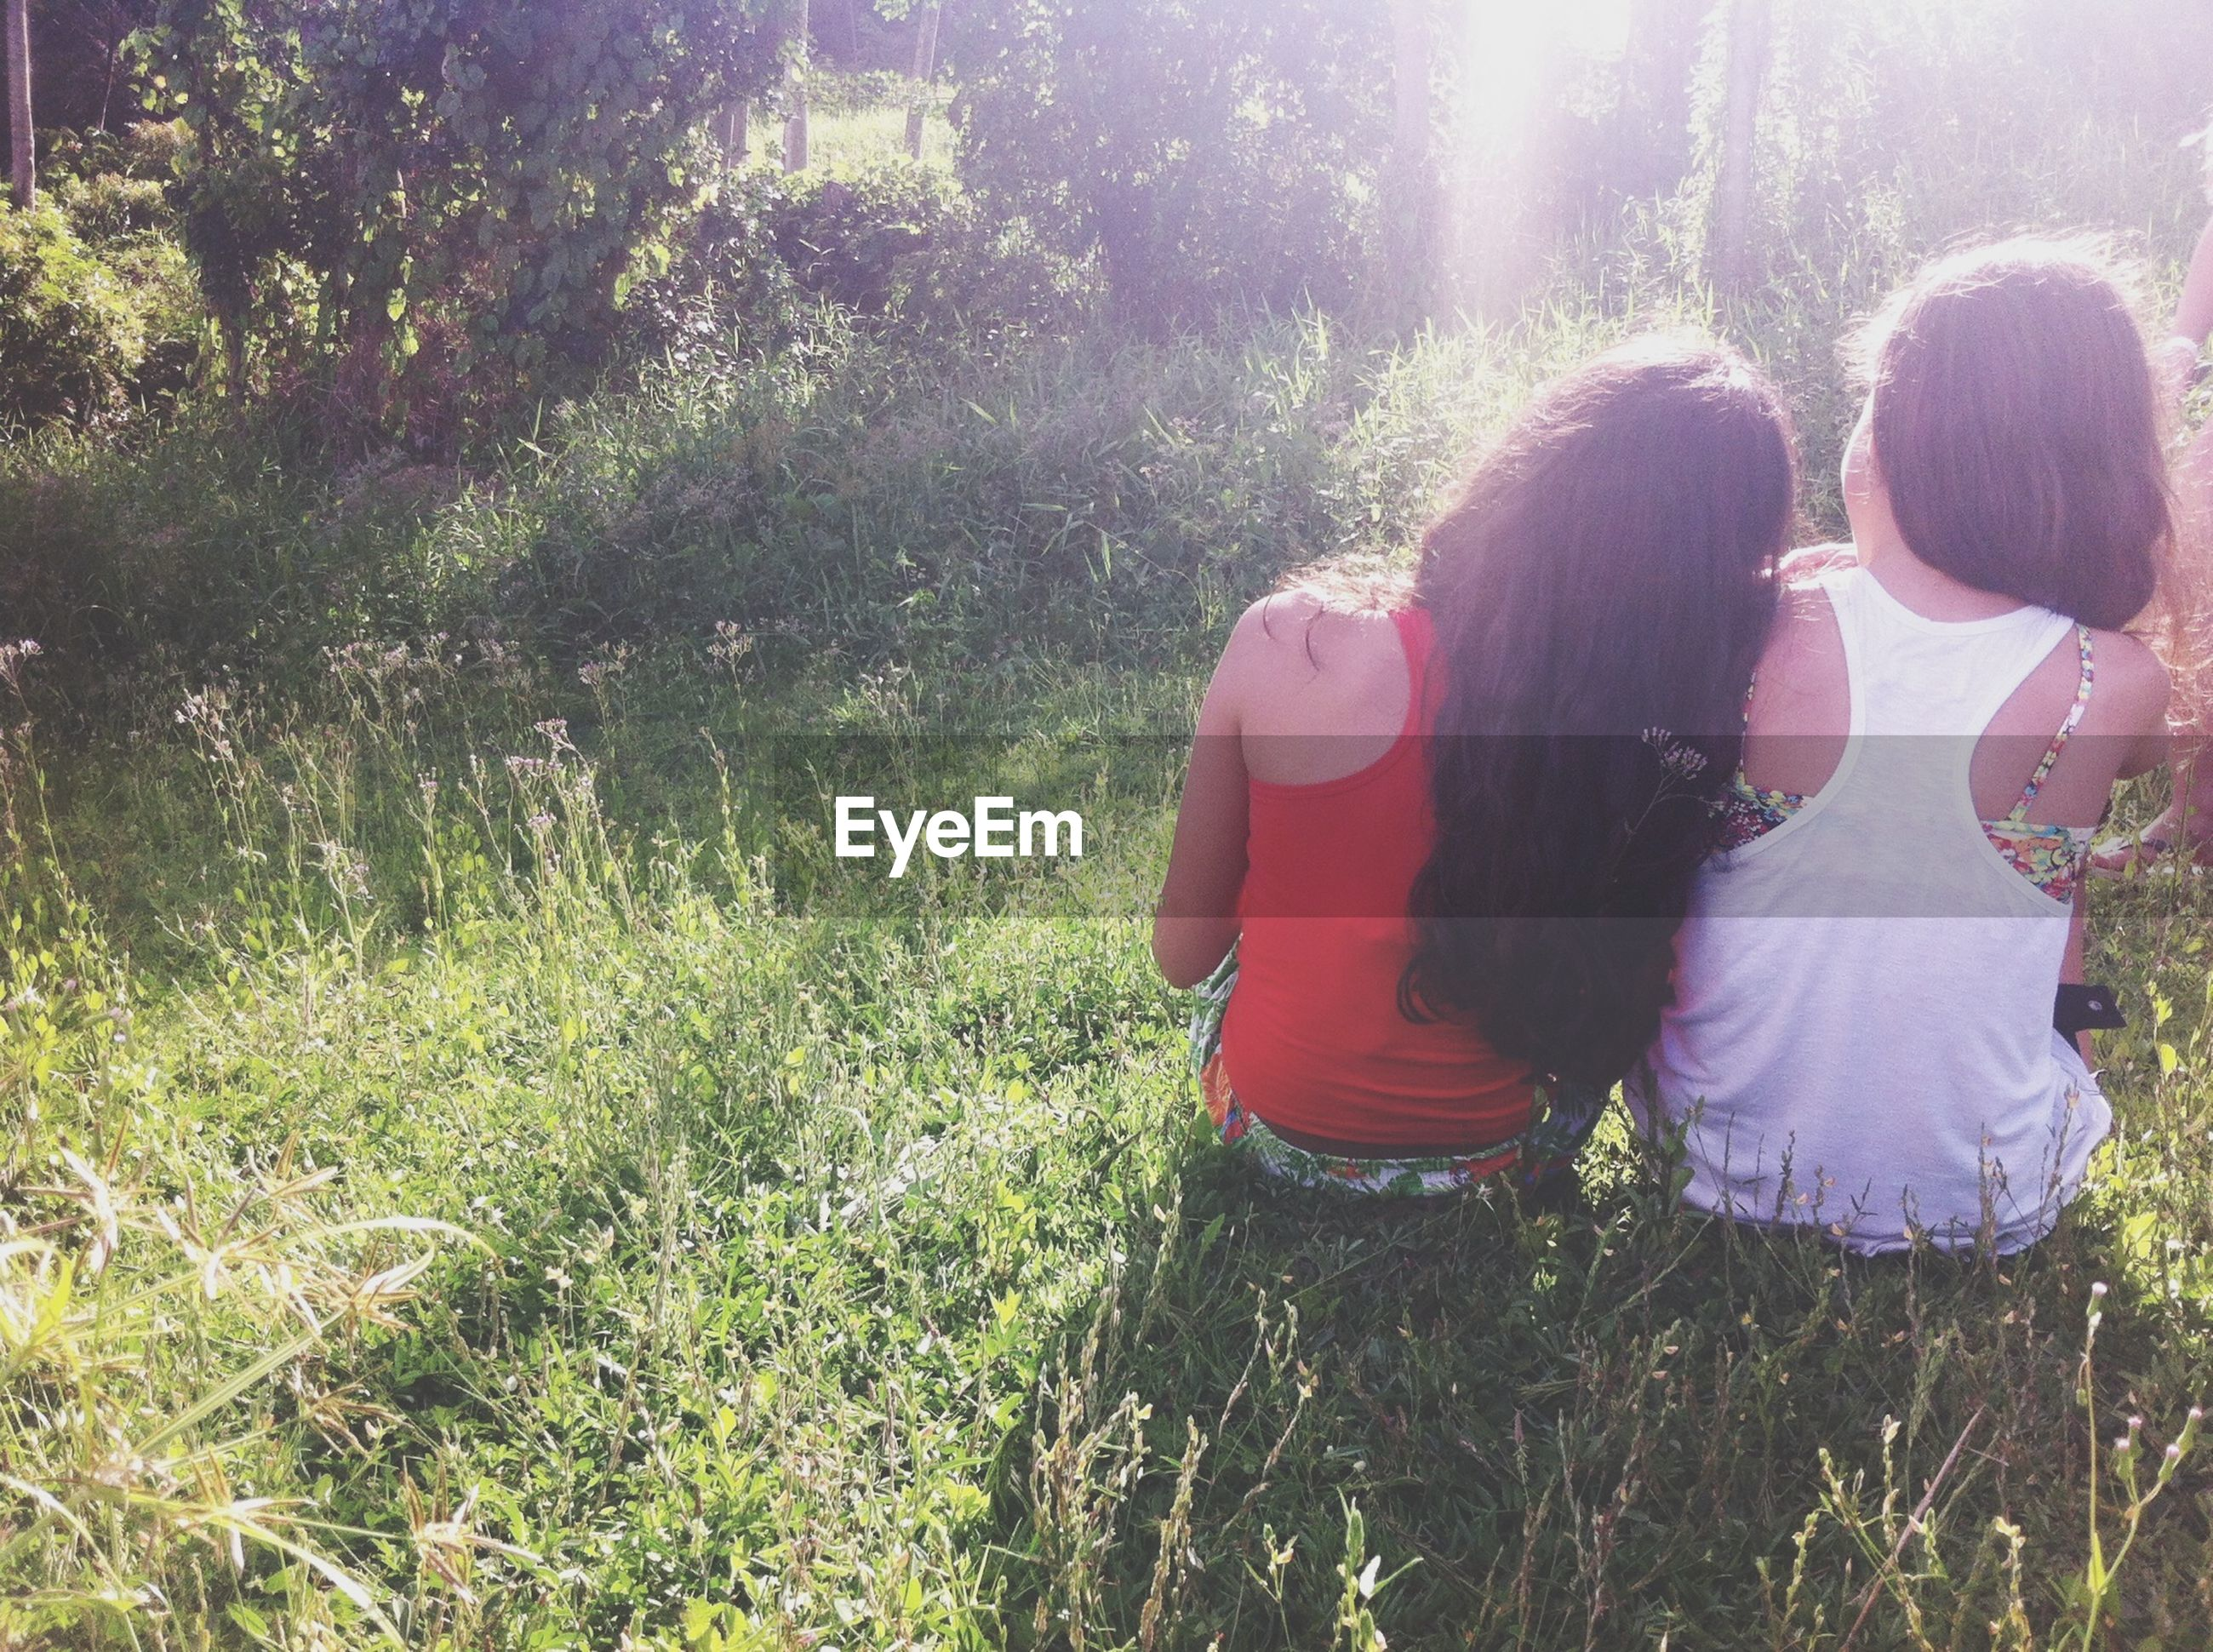 lifestyles, leisure activity, rear view, casual clothing, standing, person, grass, tree, sunlight, field, full length, plant, growth, men, nature, three quarter length, girls, outdoors